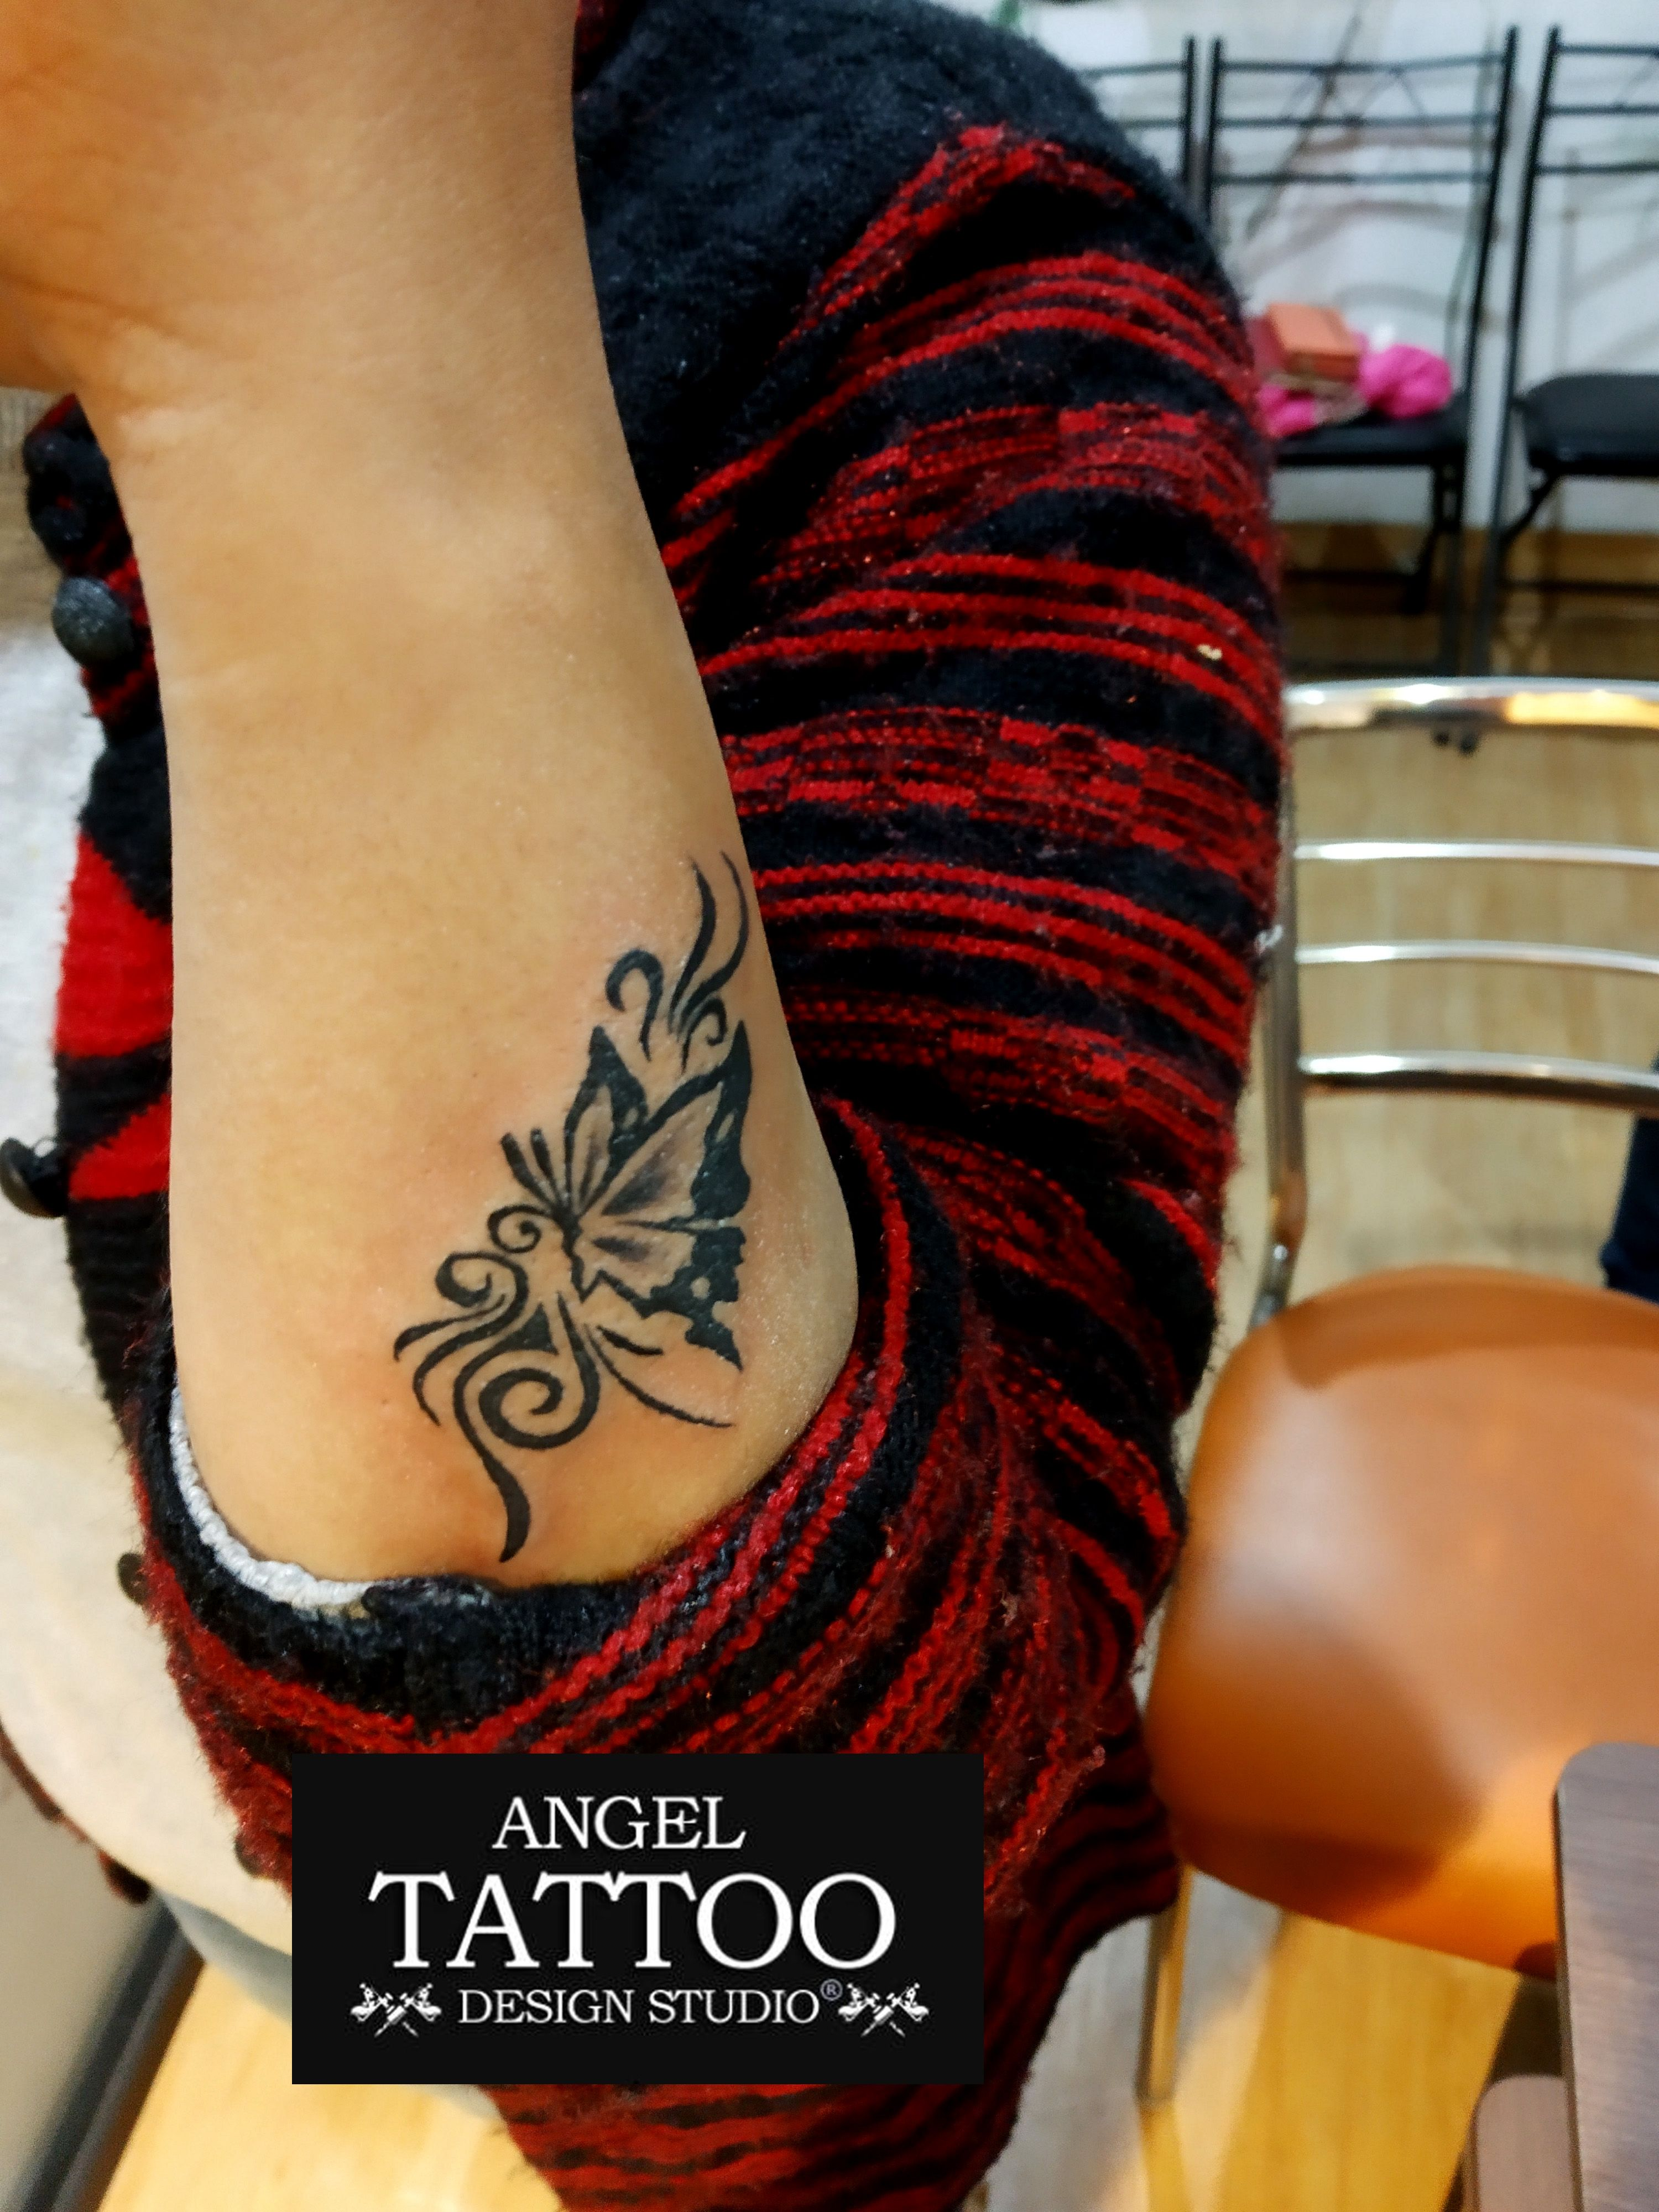 Butterfly Tattoo On Wrist Made At Angel Tattoo Design Studio Gurgaon Butterfly Tattoo On Wrist Butterfly Wrist Tattoo Butterfly Tattoo Tattoos